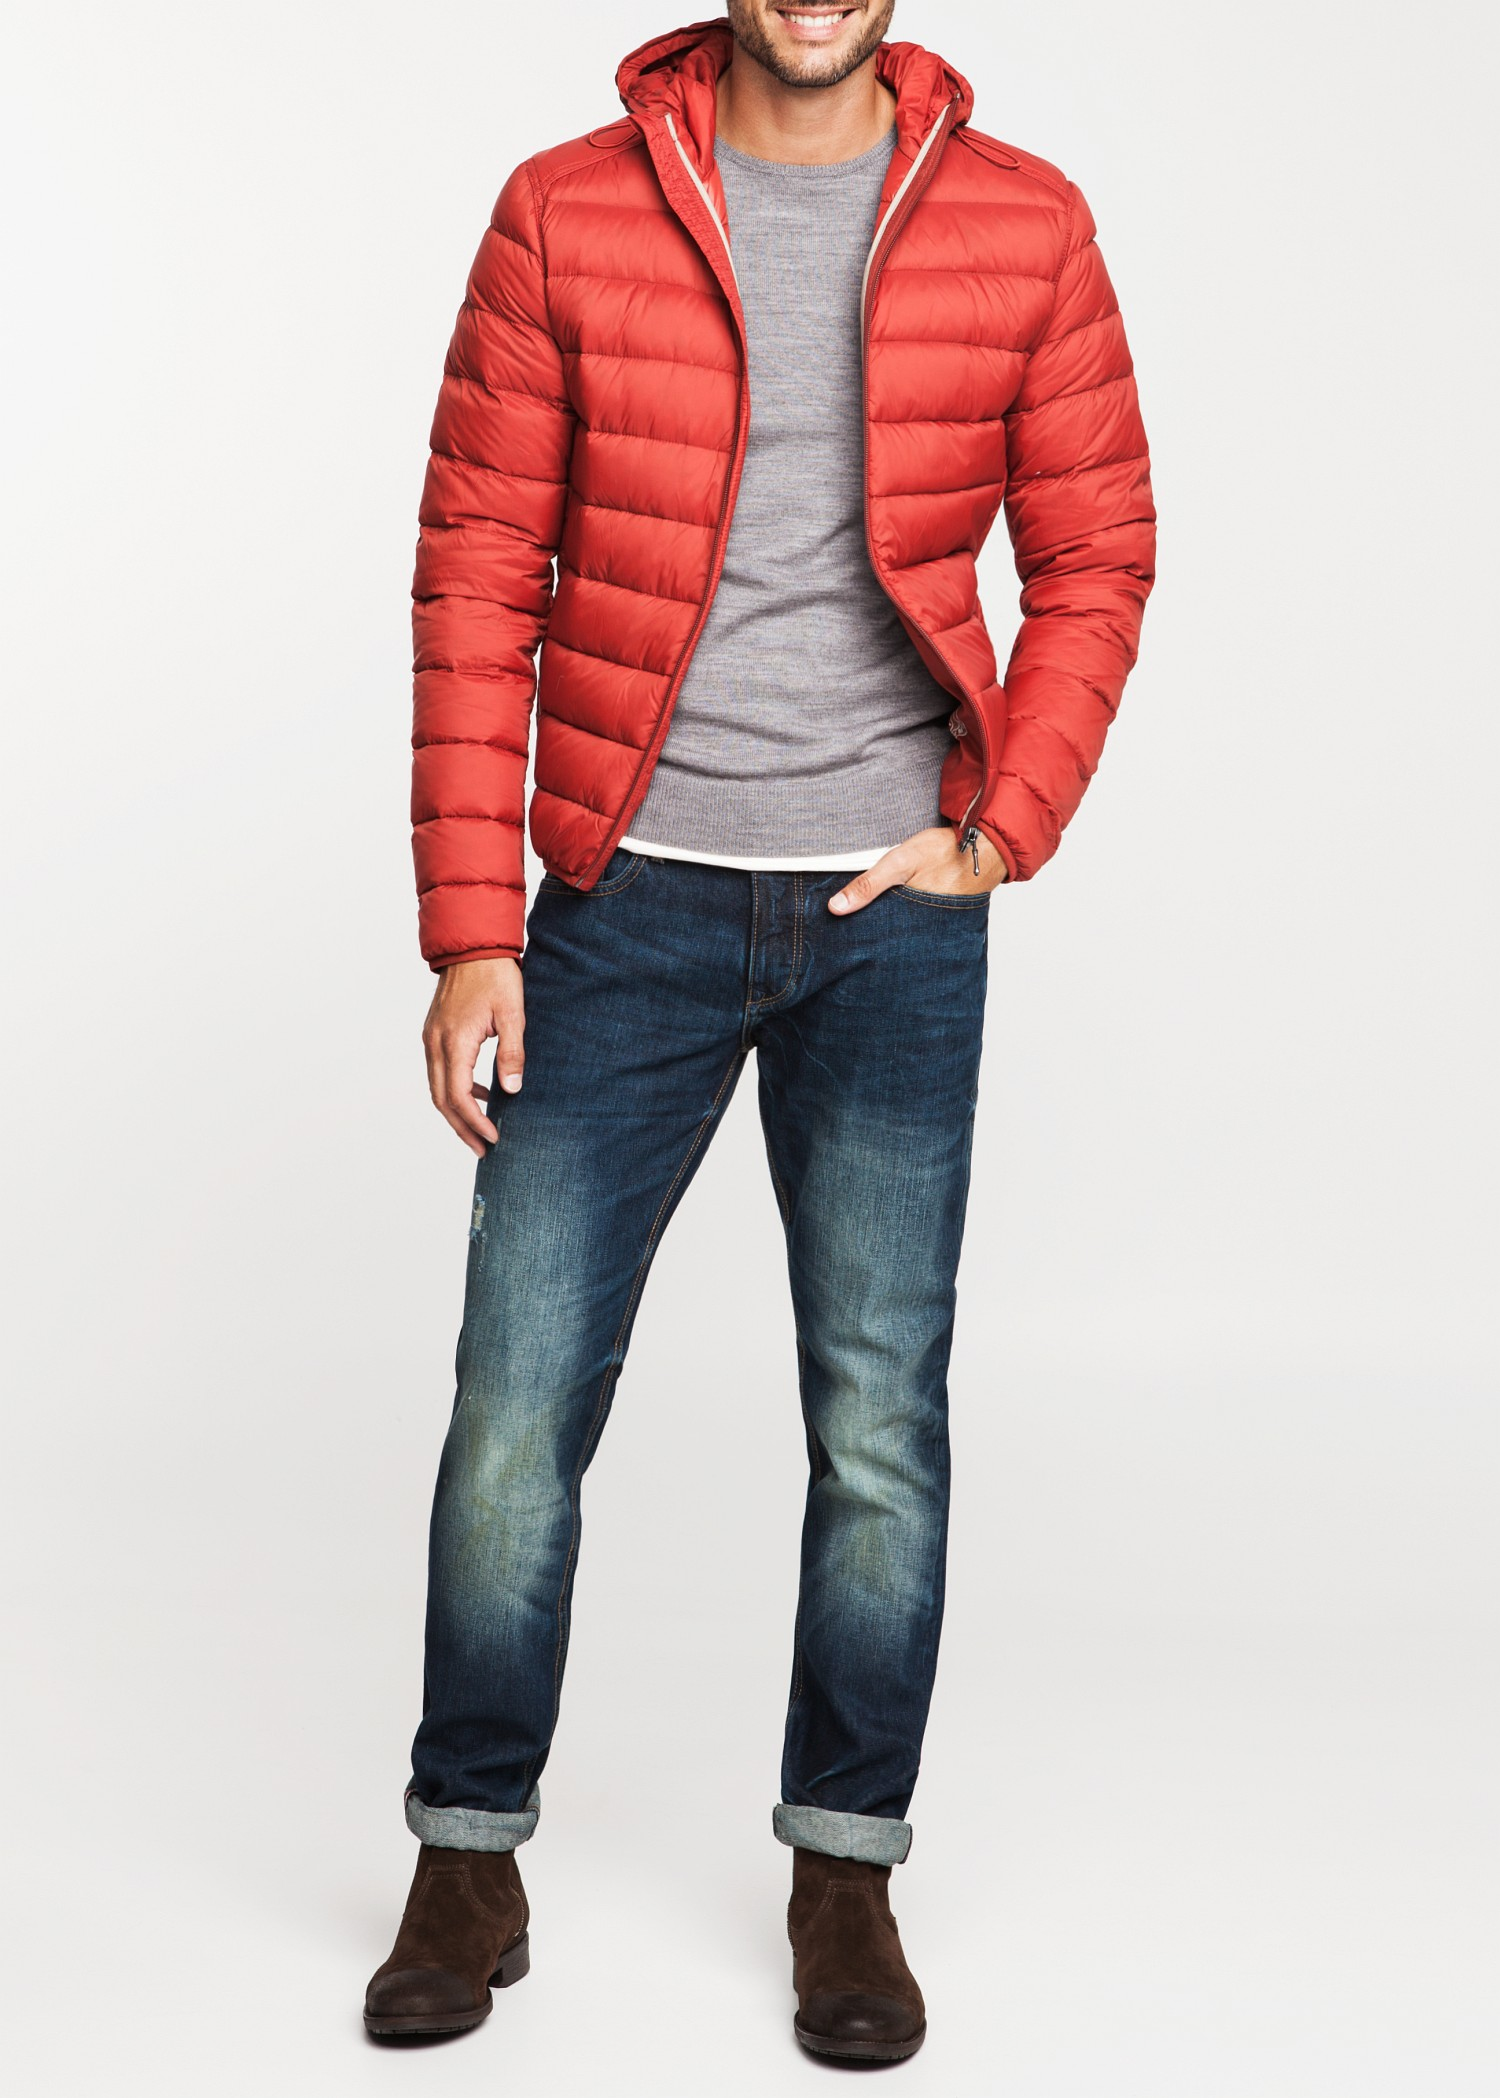 Mango Foldable Down Feather Coat In Red For Men Lyst